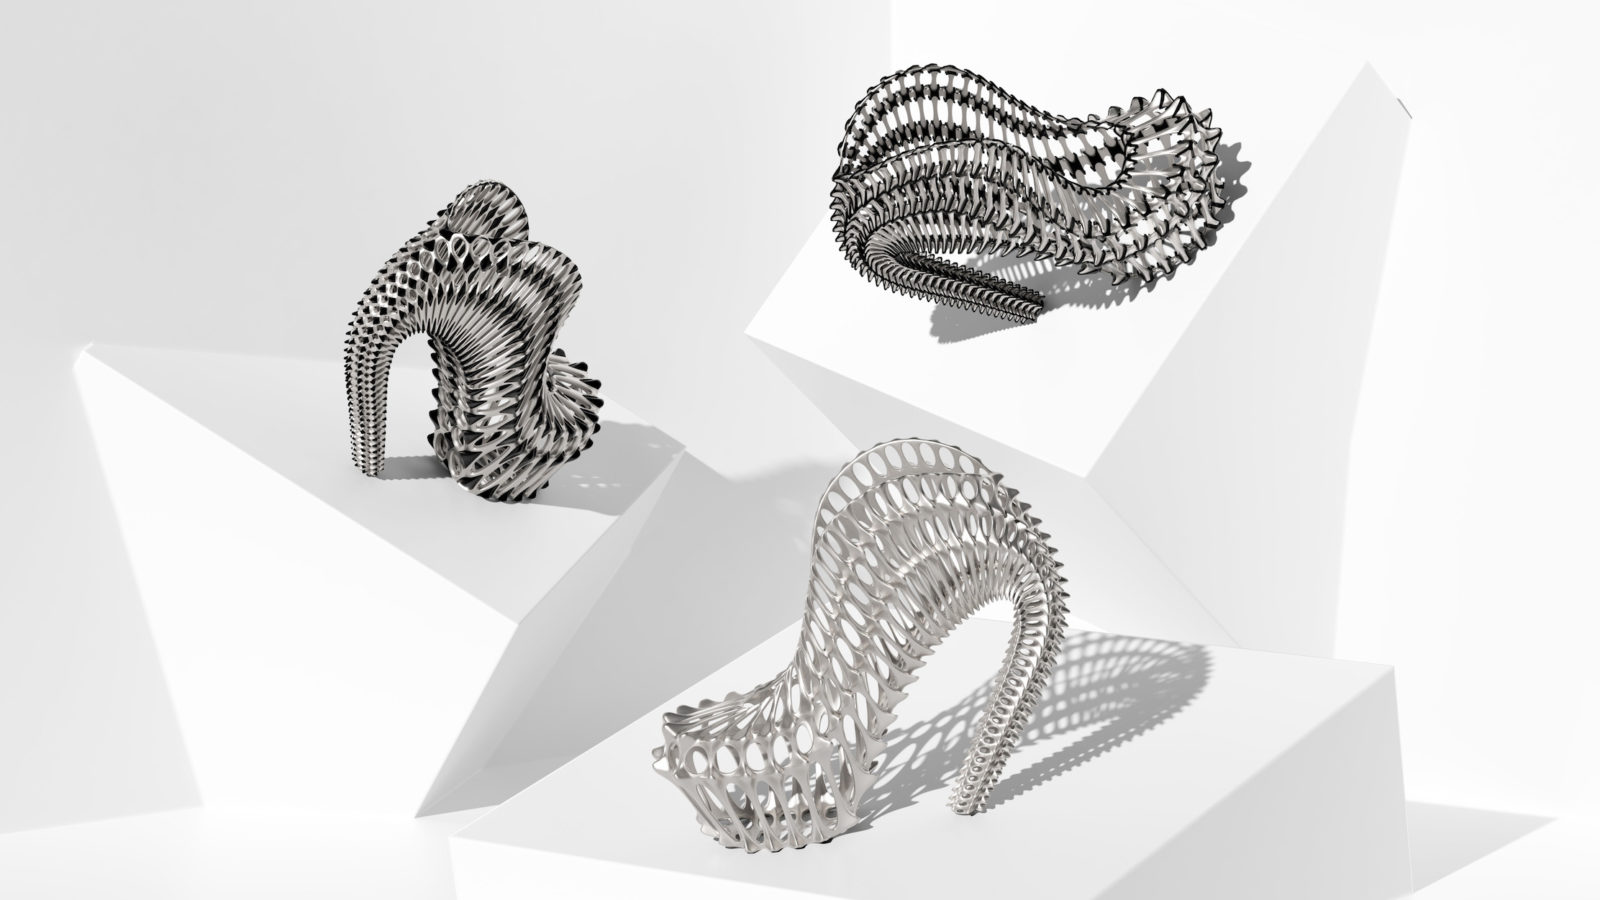 an assortment of 3D printed shoes in the Seahorse collection